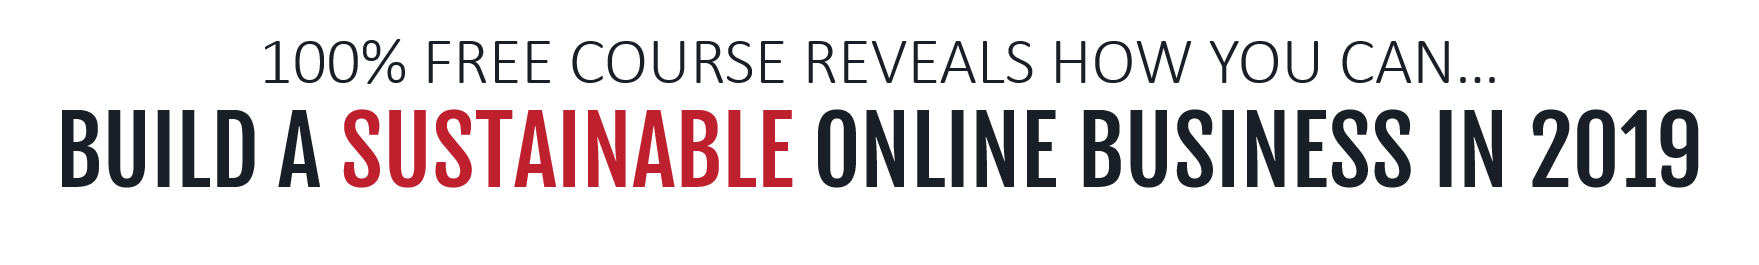 100 percent free course reveals how you can build a sustainable online business in 2019